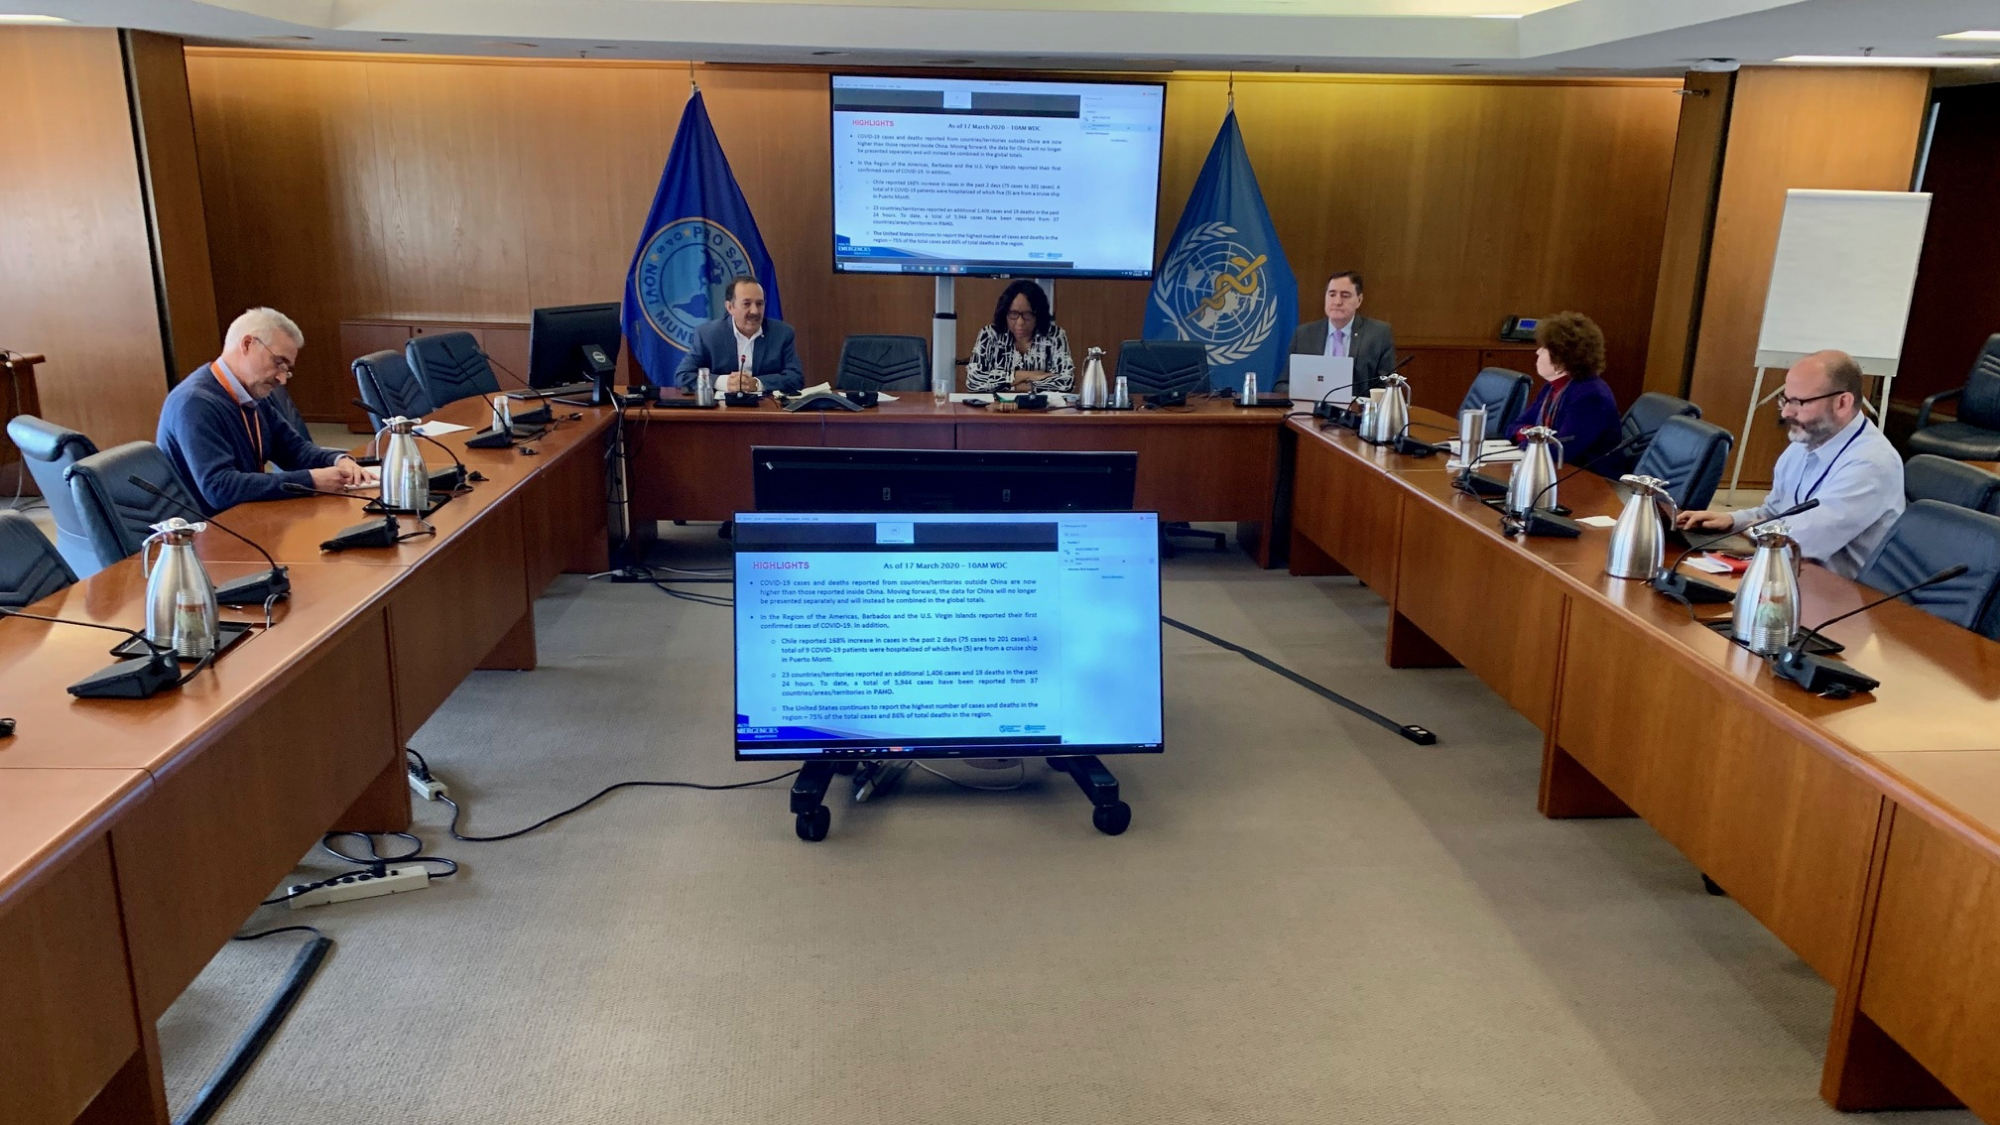 PAHO Director speaks at teleconference on 18 March 2020